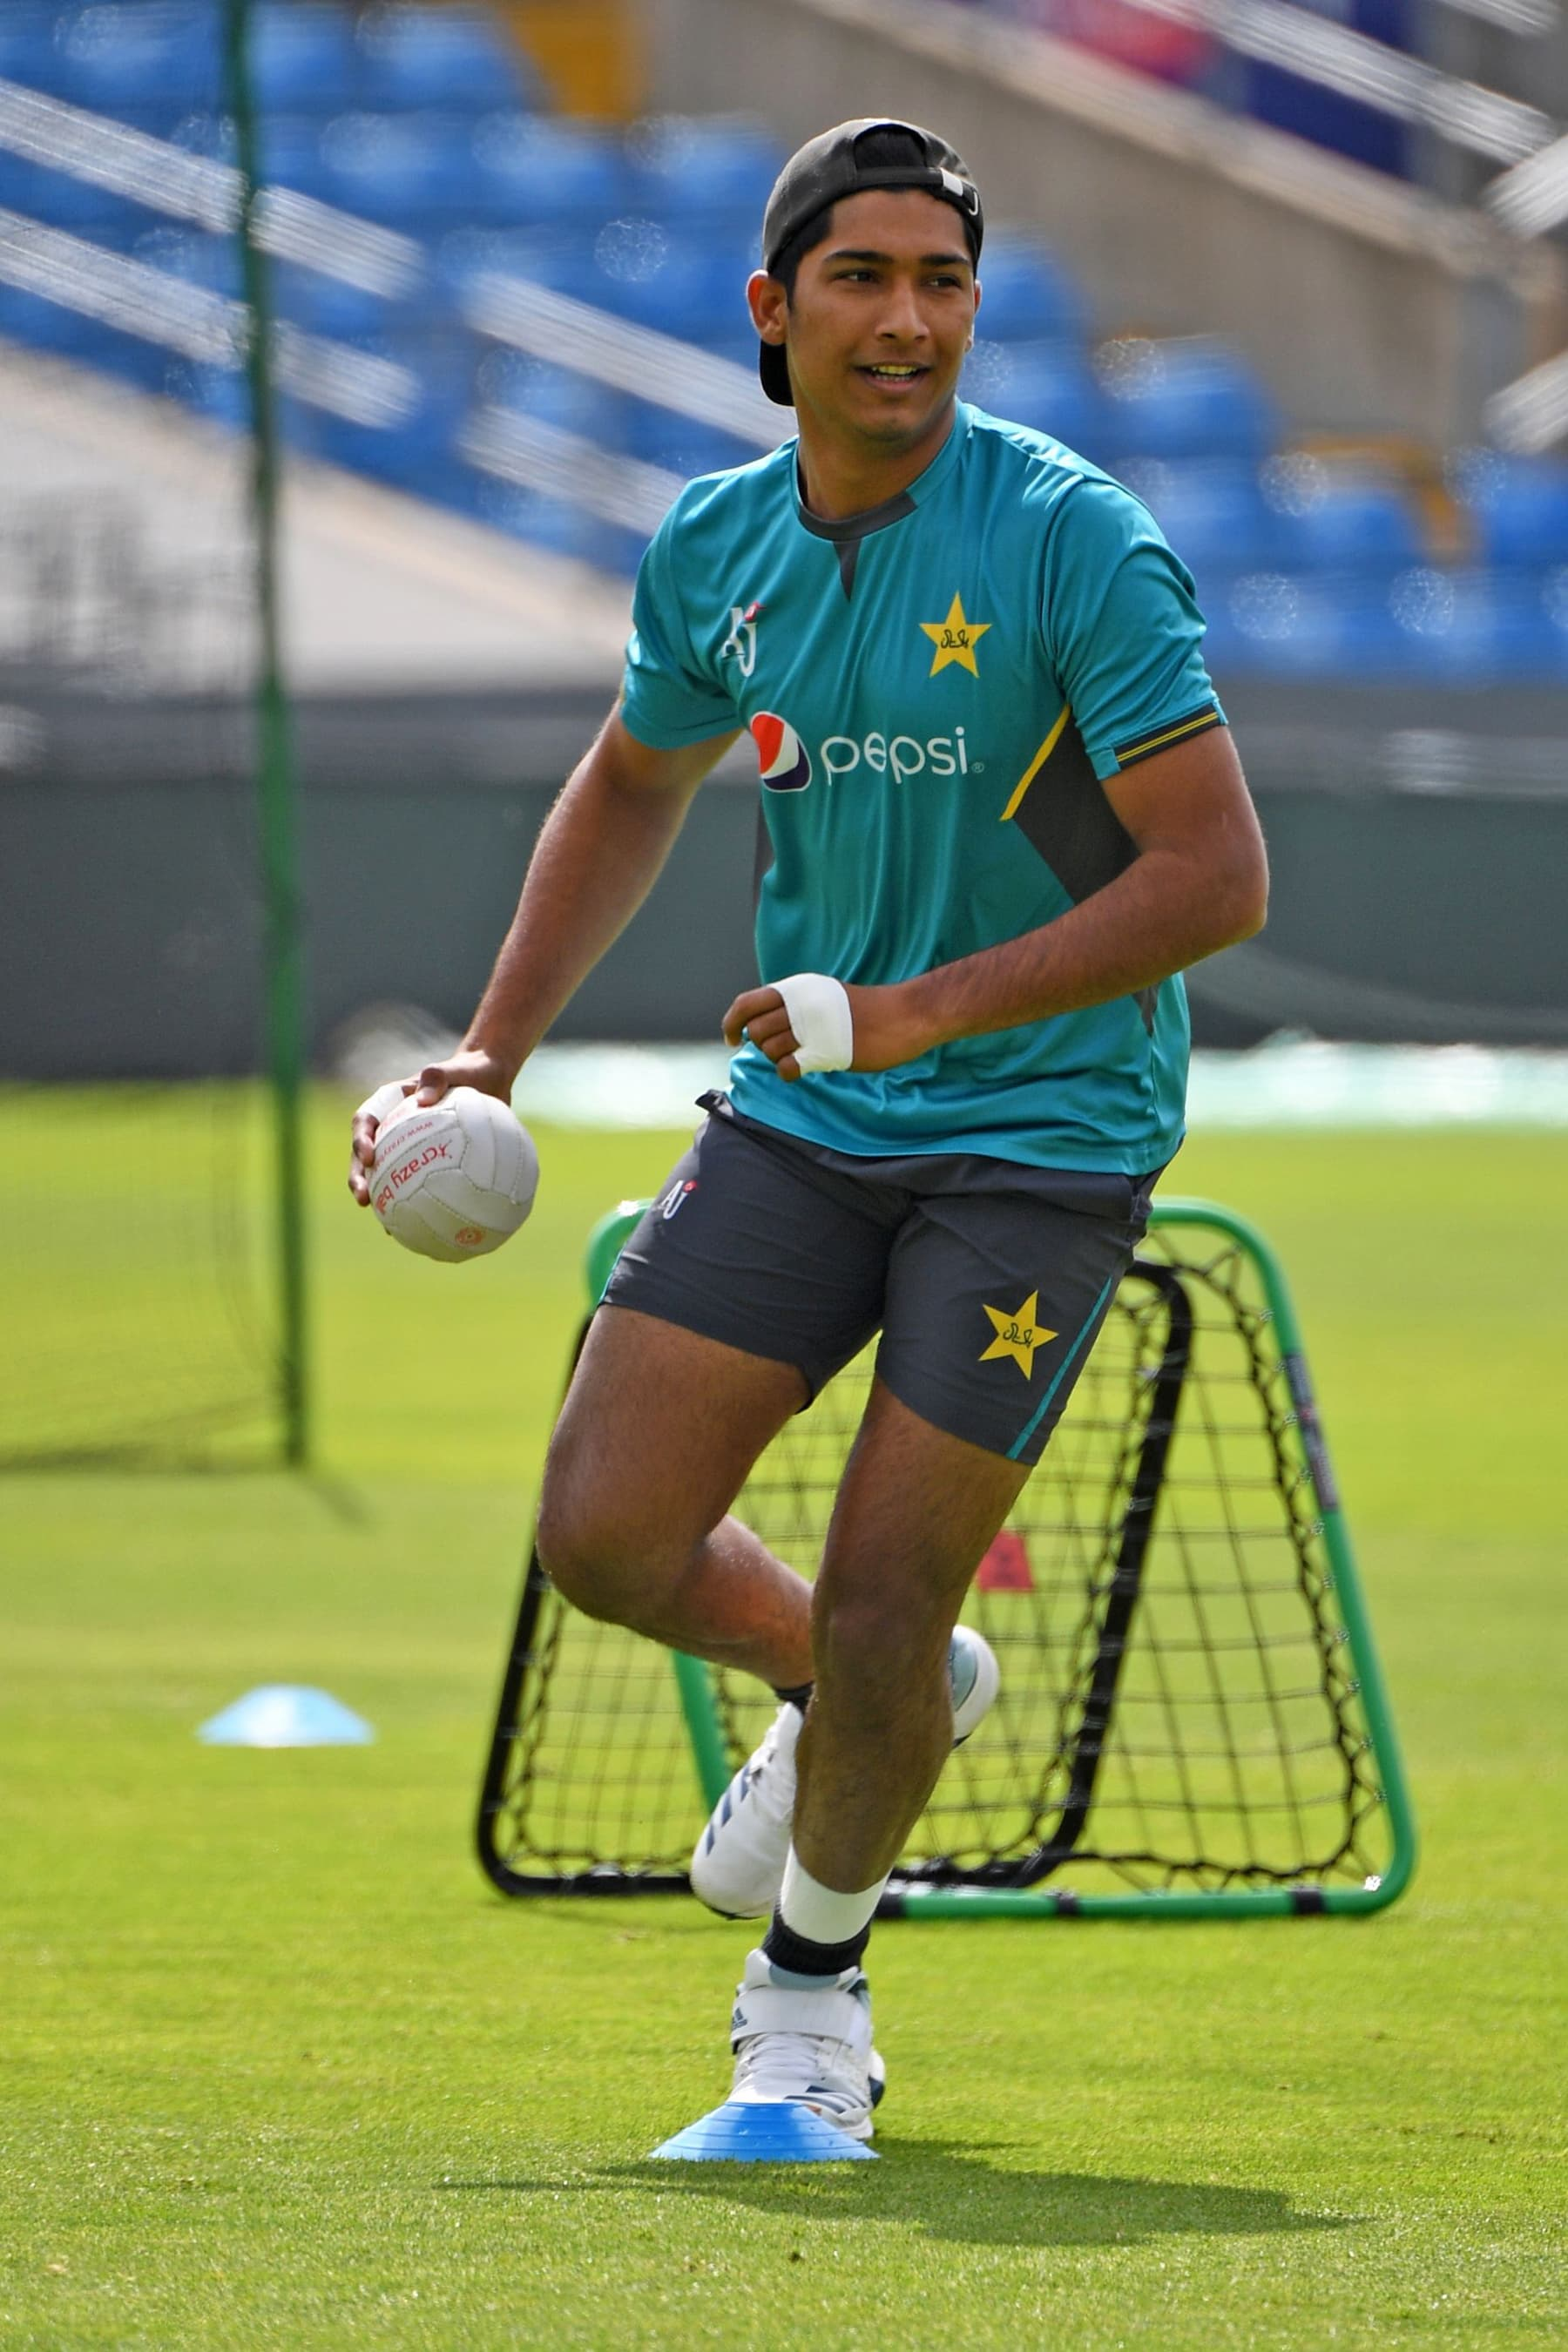 Mohammad Hasnain takes hold of the ball during the team training session at Headingly. — AFP